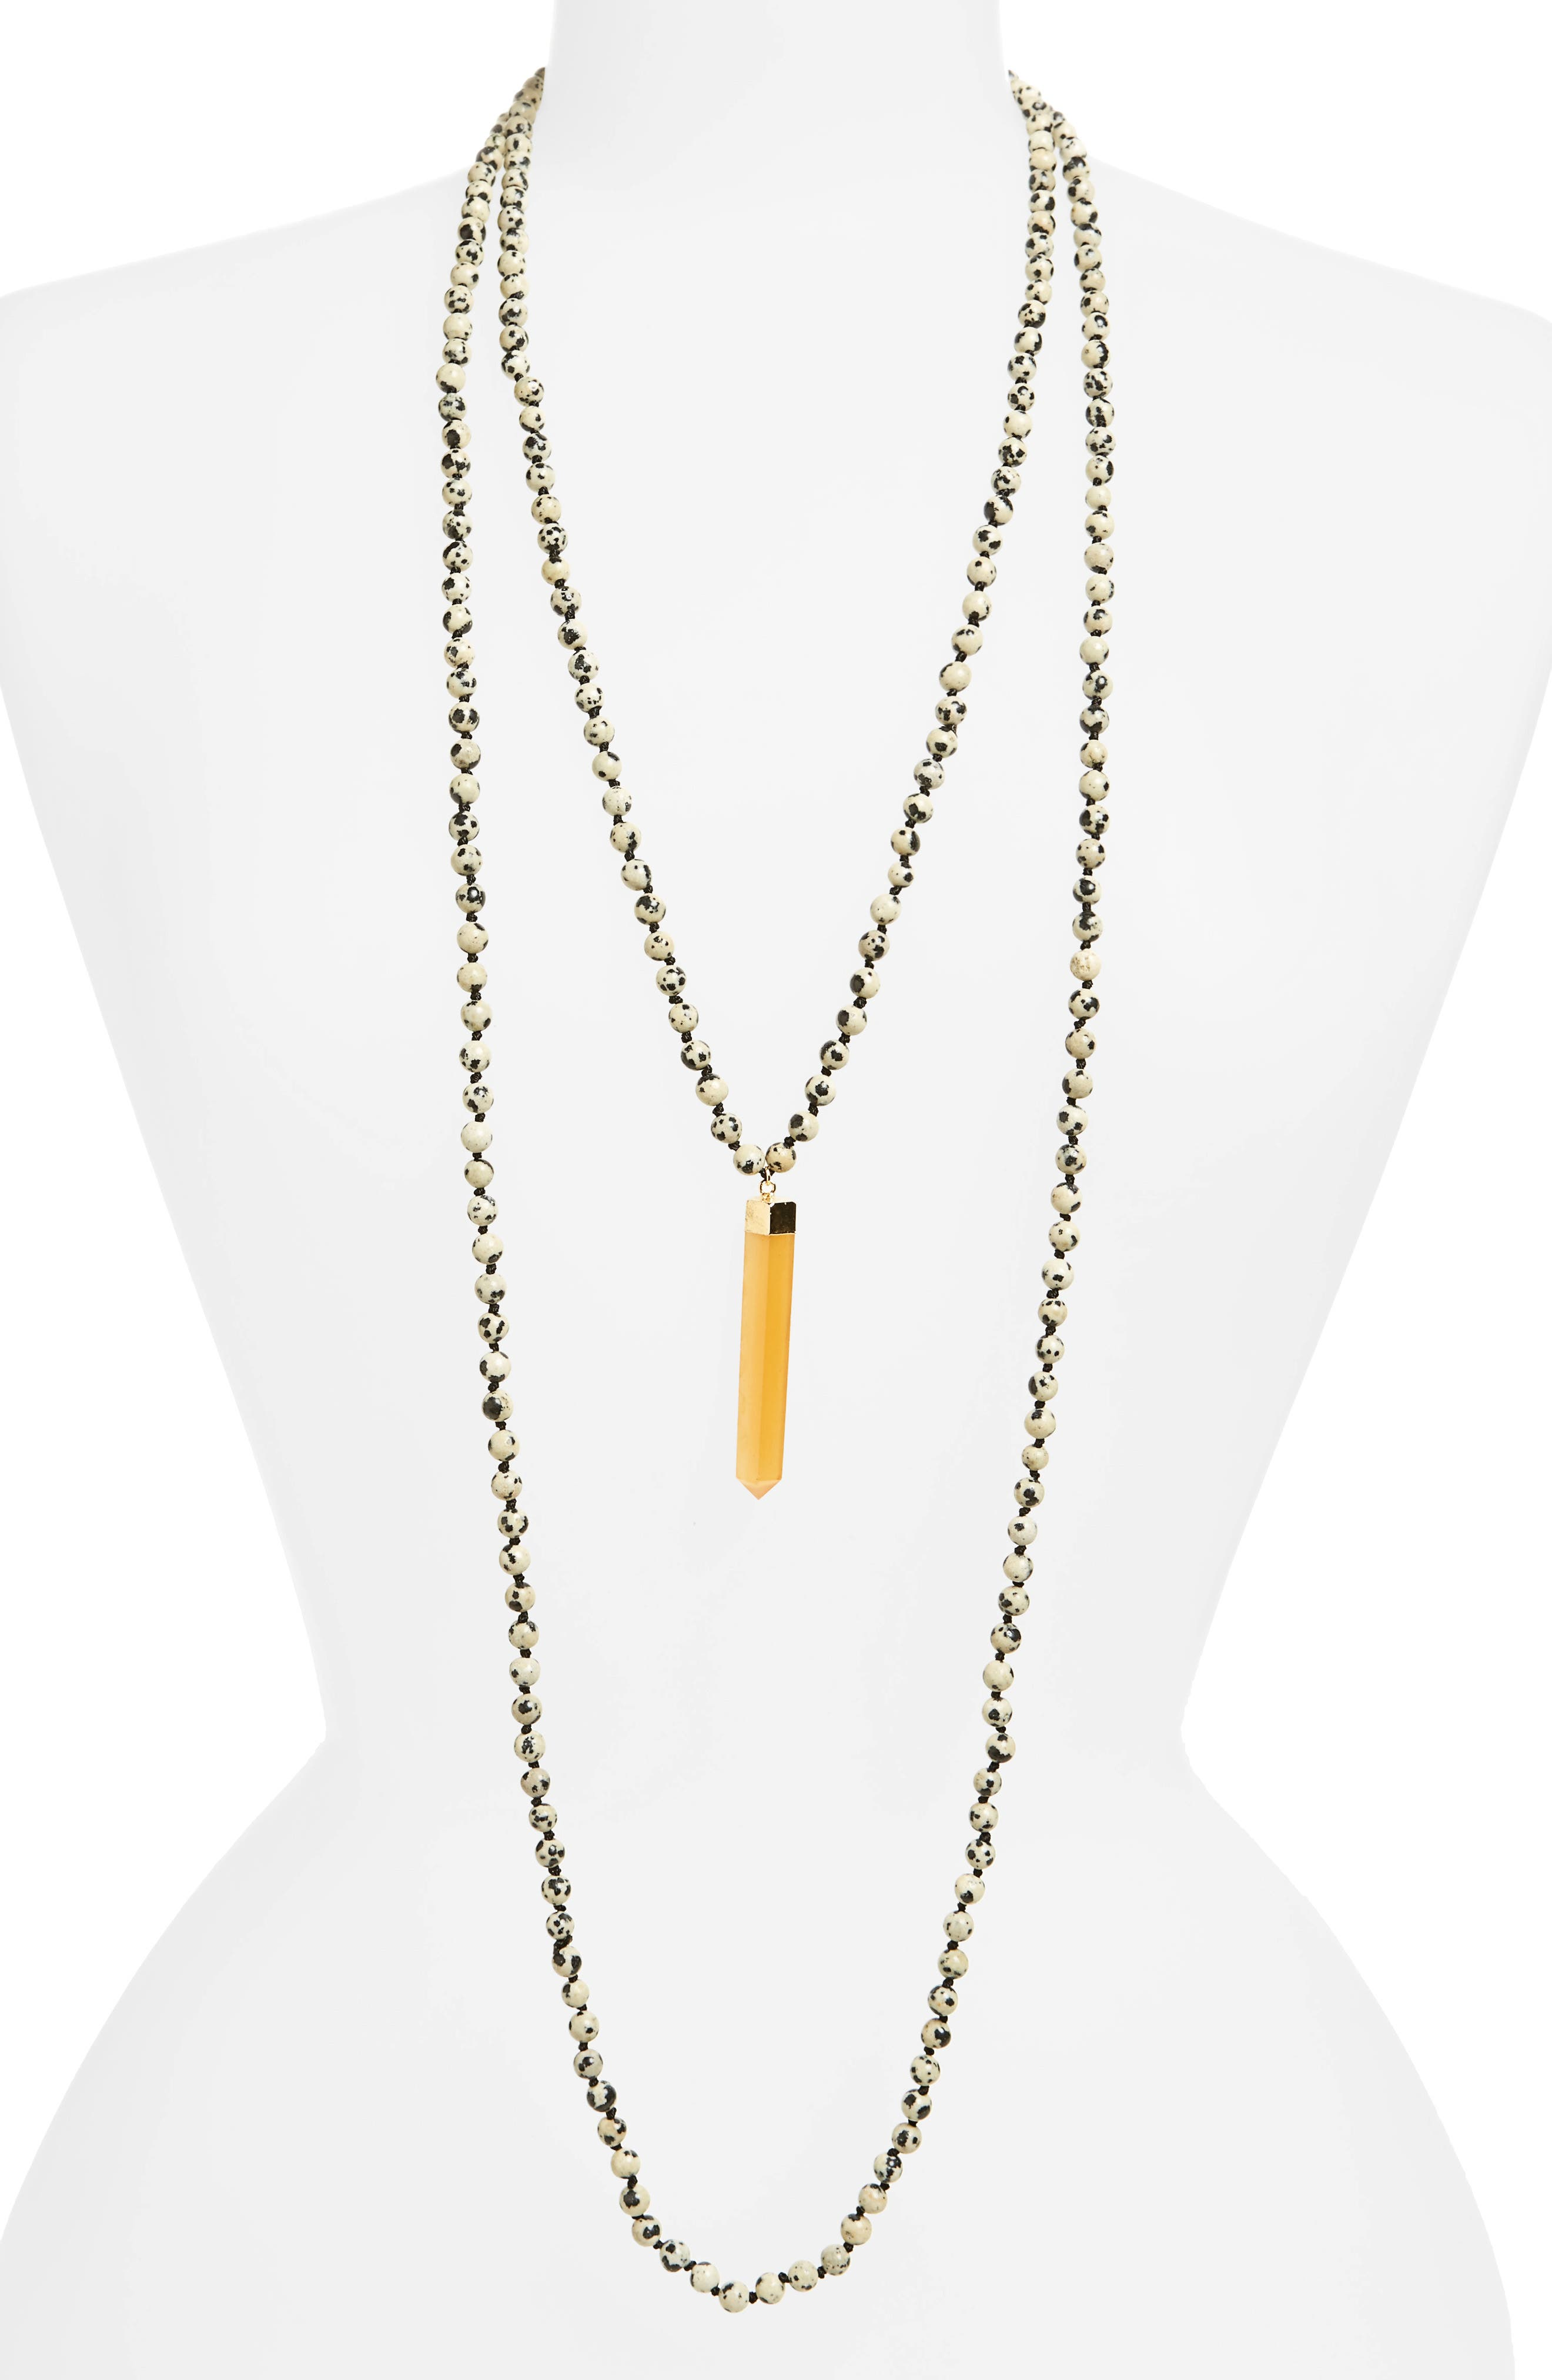 Main Image - Love's Affect Knotted Two-Strand Pendant Necklace